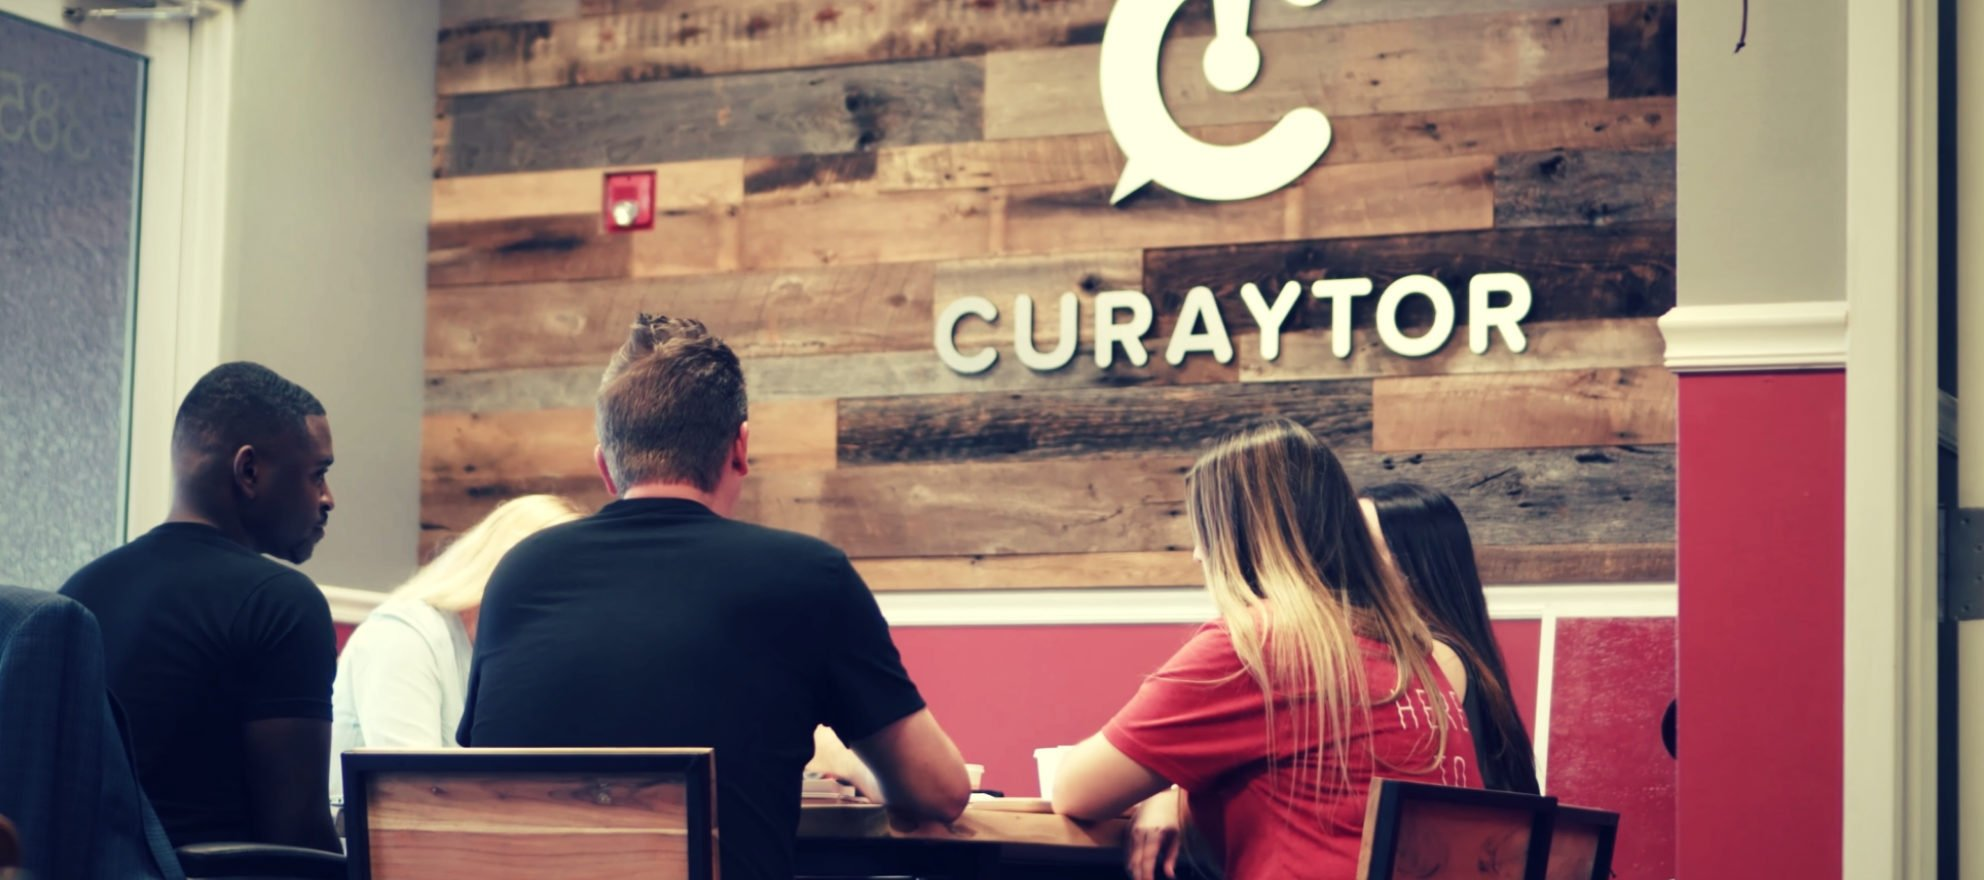 Curaytor nabs HubSpot designer for top job